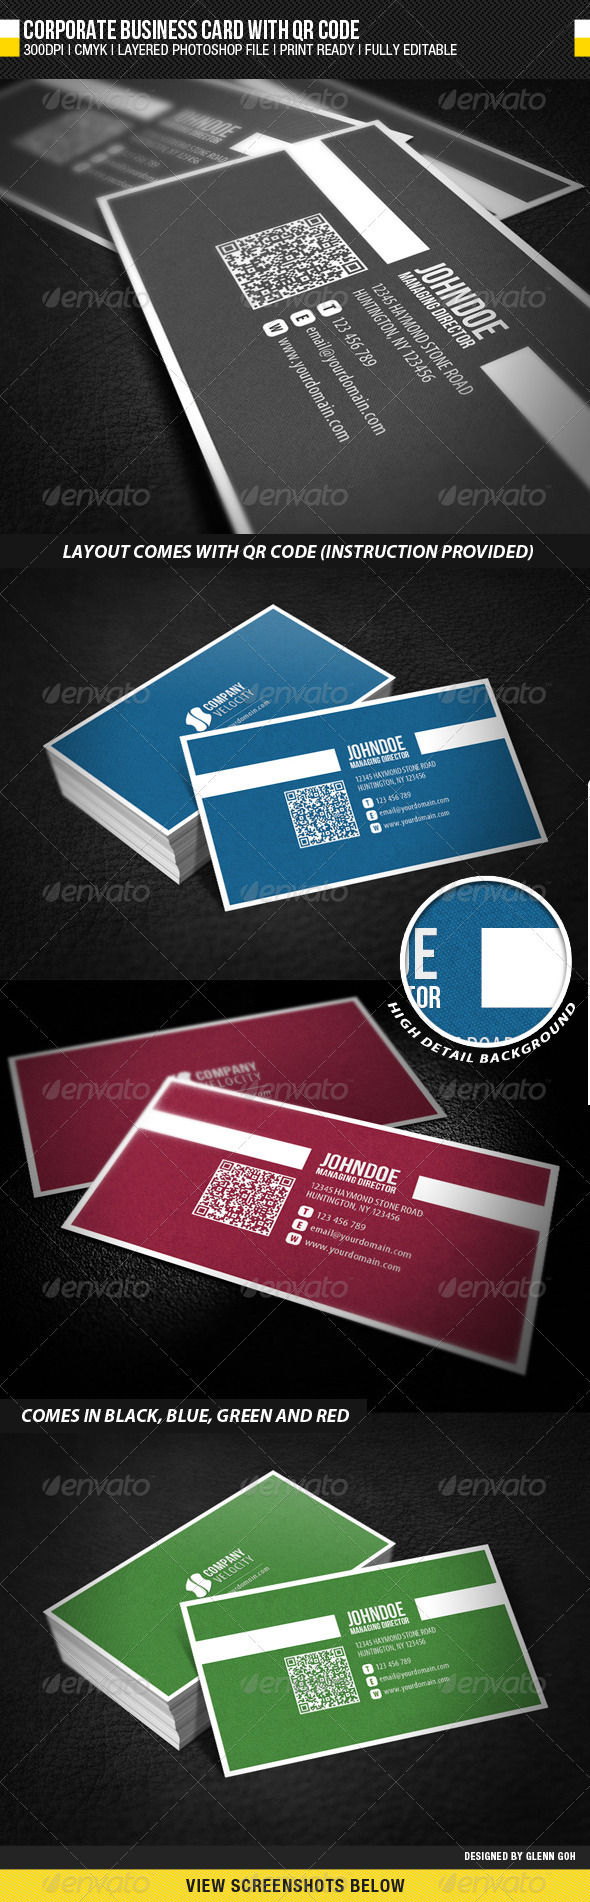 Corporate Business Card with QR Code - Creative Business Cards